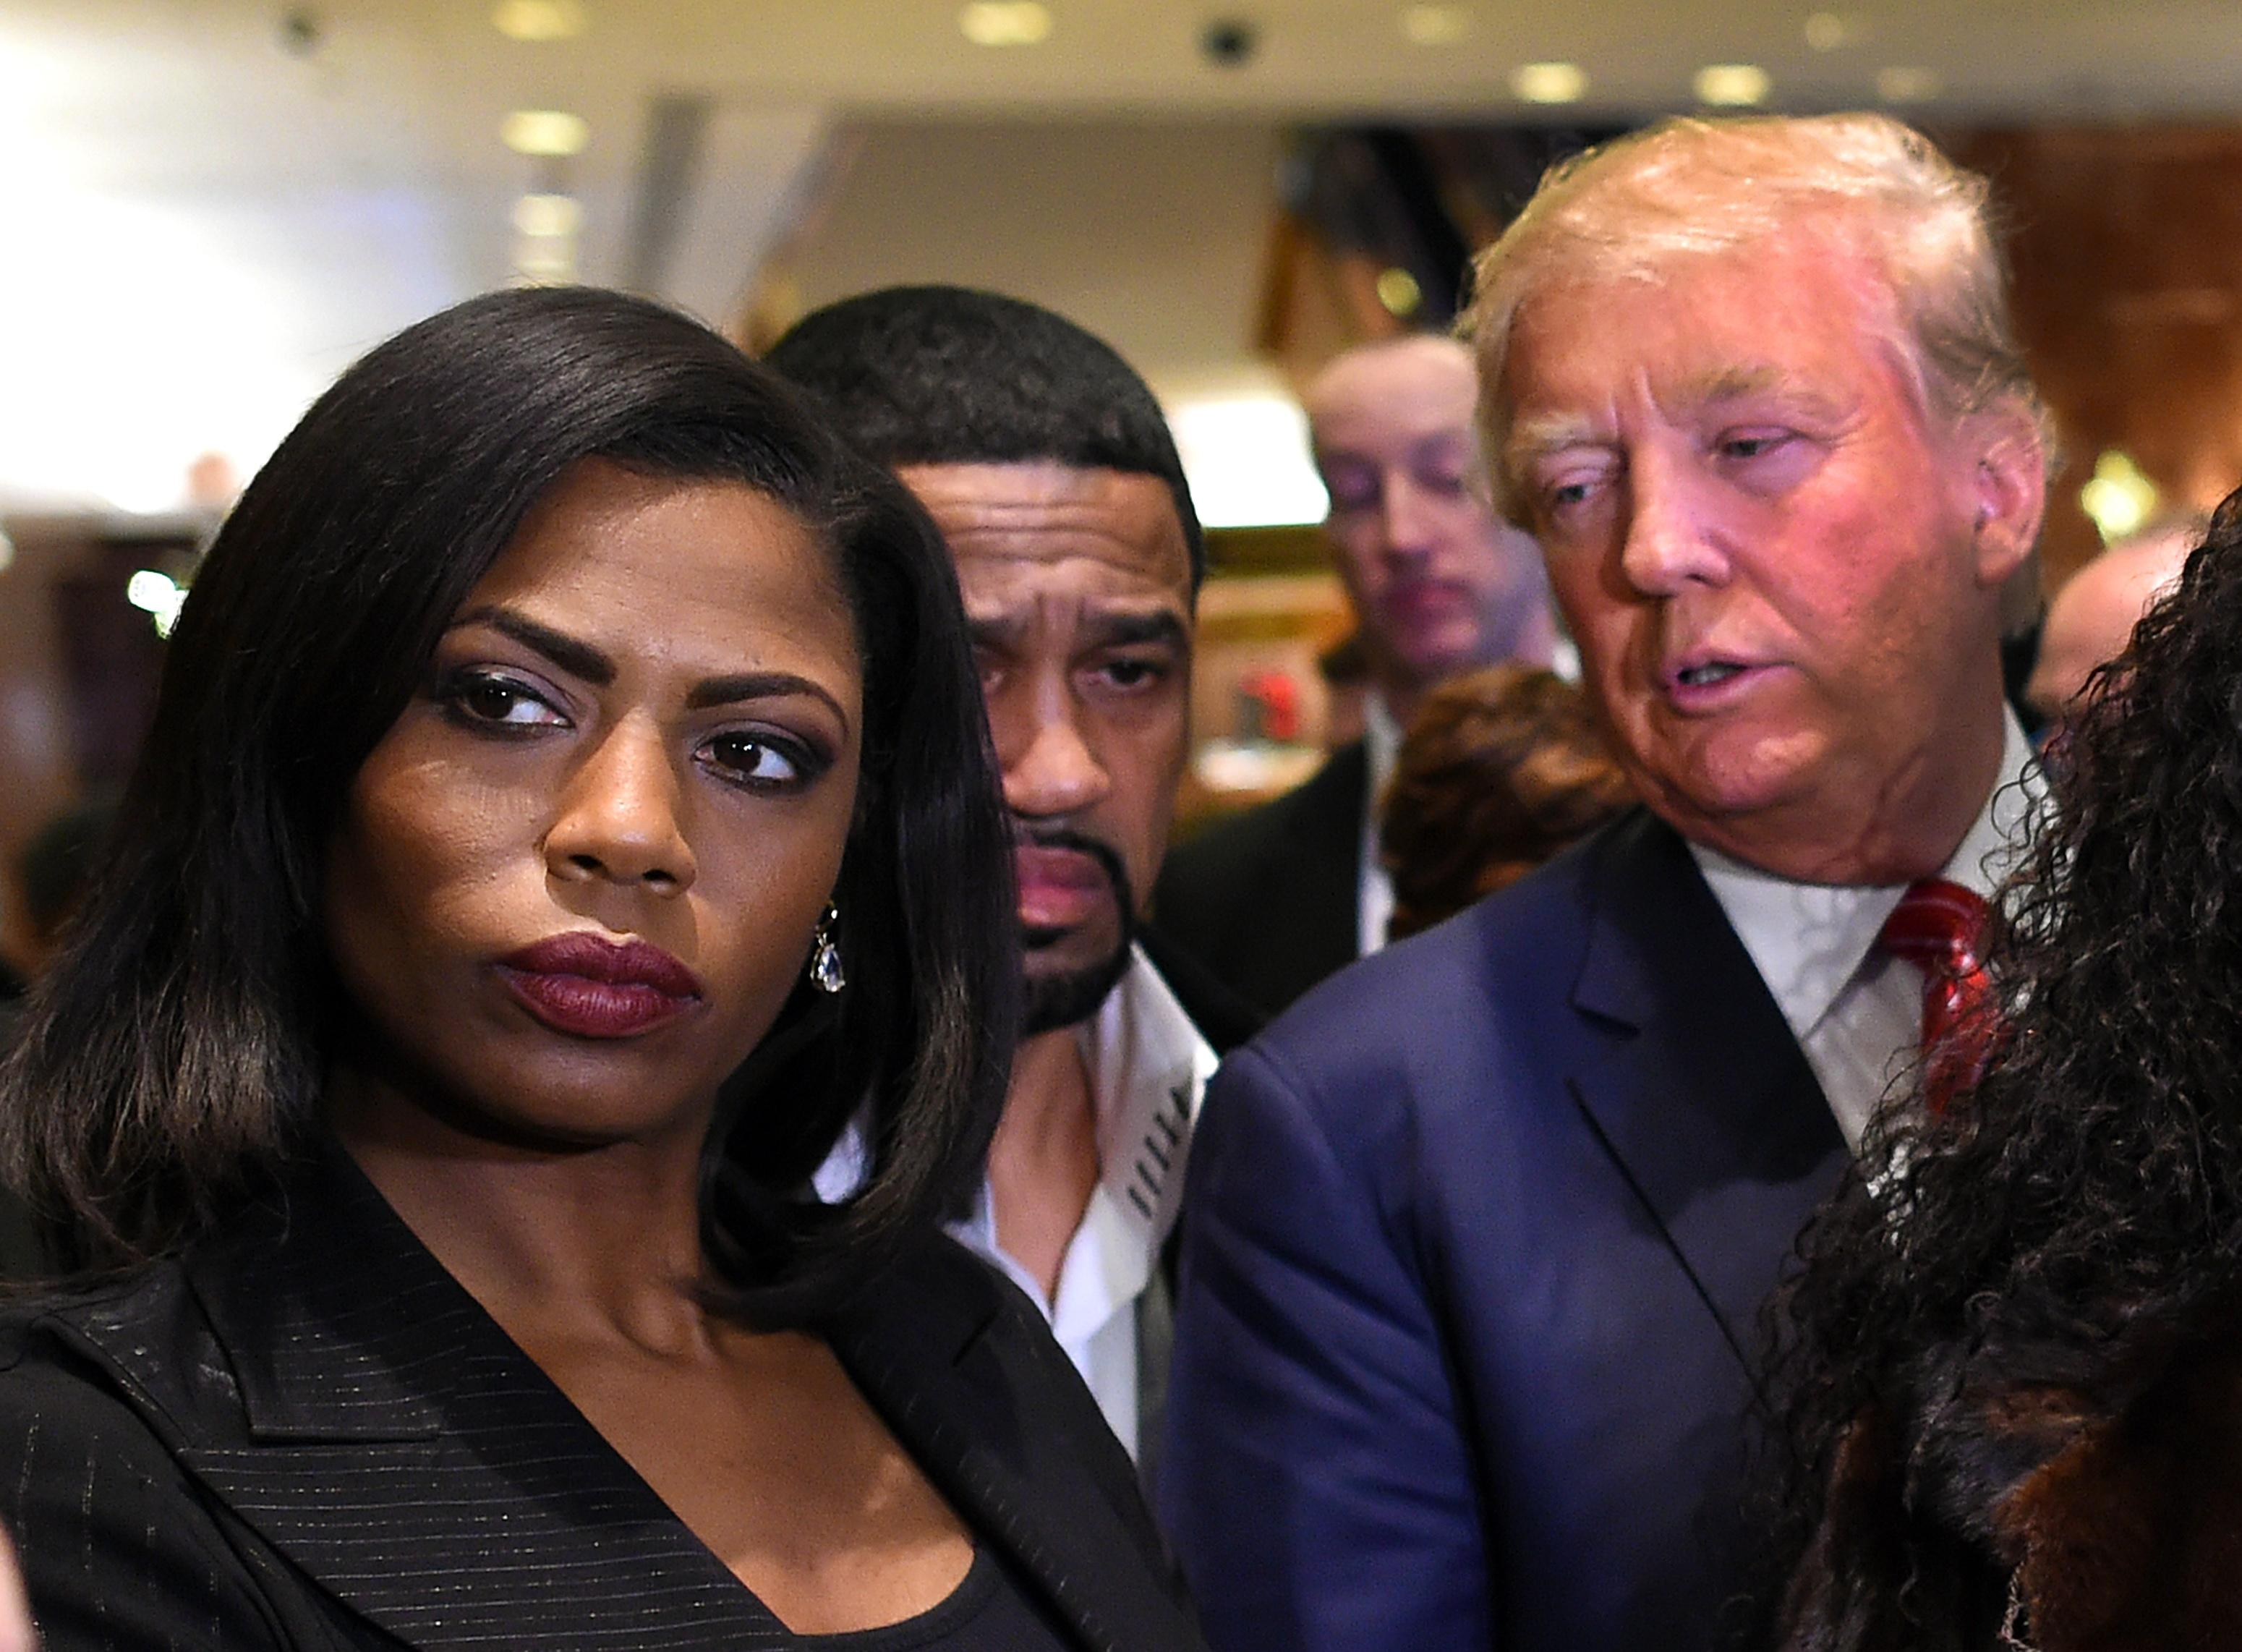 Omarosa Manigault and Donald Trump, among a crowd of people.